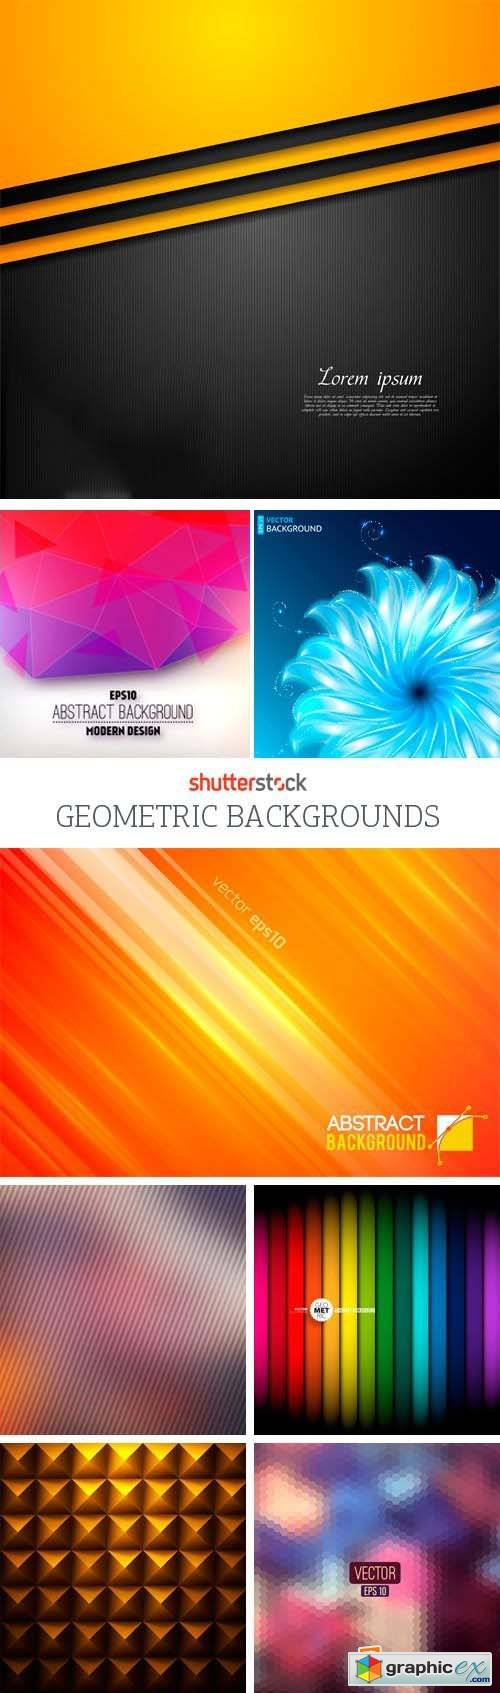 Amazing SS - Geometric Backgrounds, 25xEPS